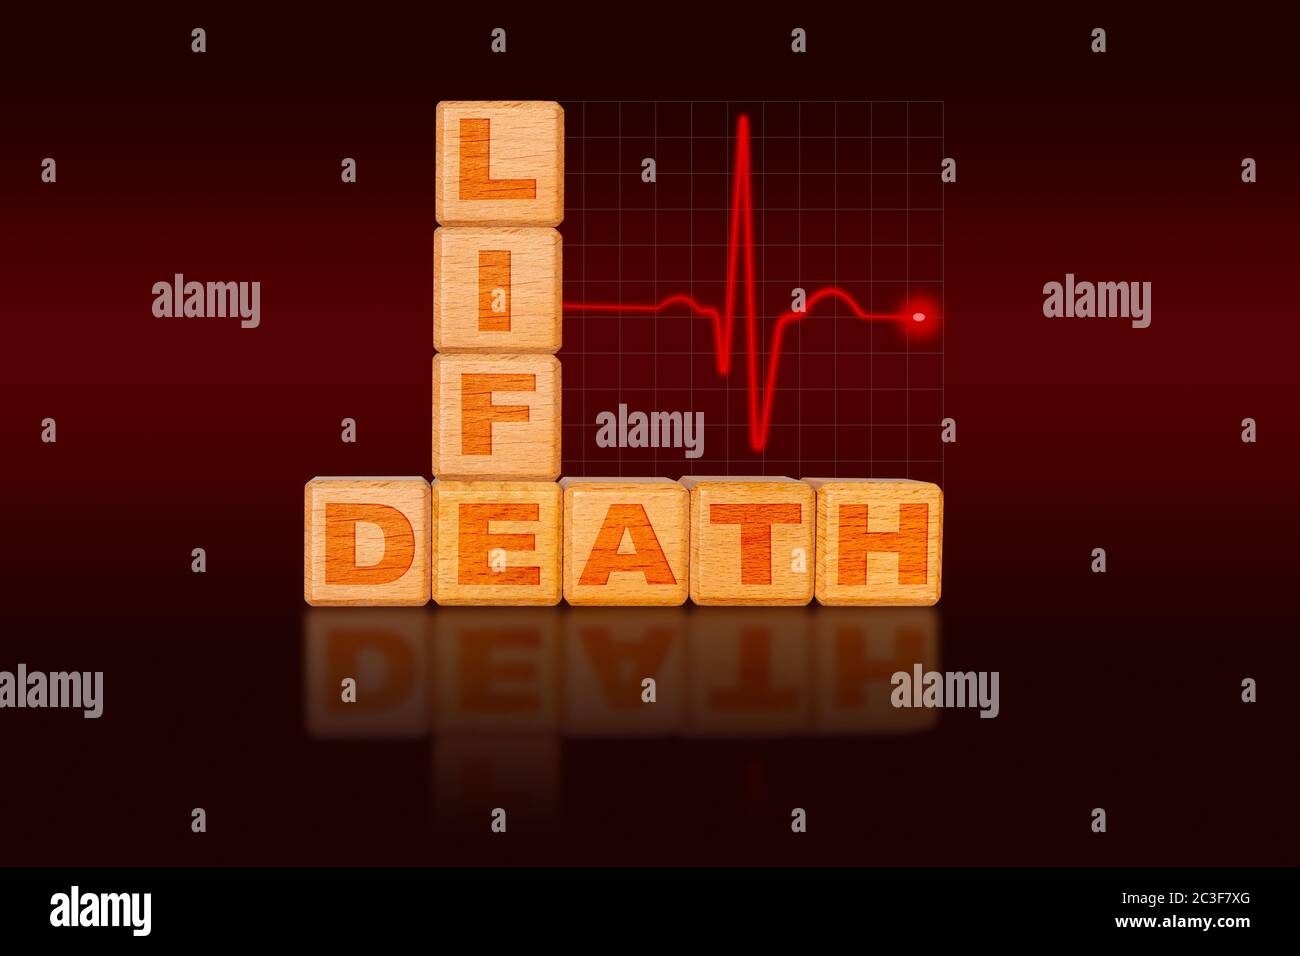 life and death concept written on alphabet blocks in the form of a chart with ecg electrocardiogram showing strong heart beat initially followed by fl 2C3F7XG